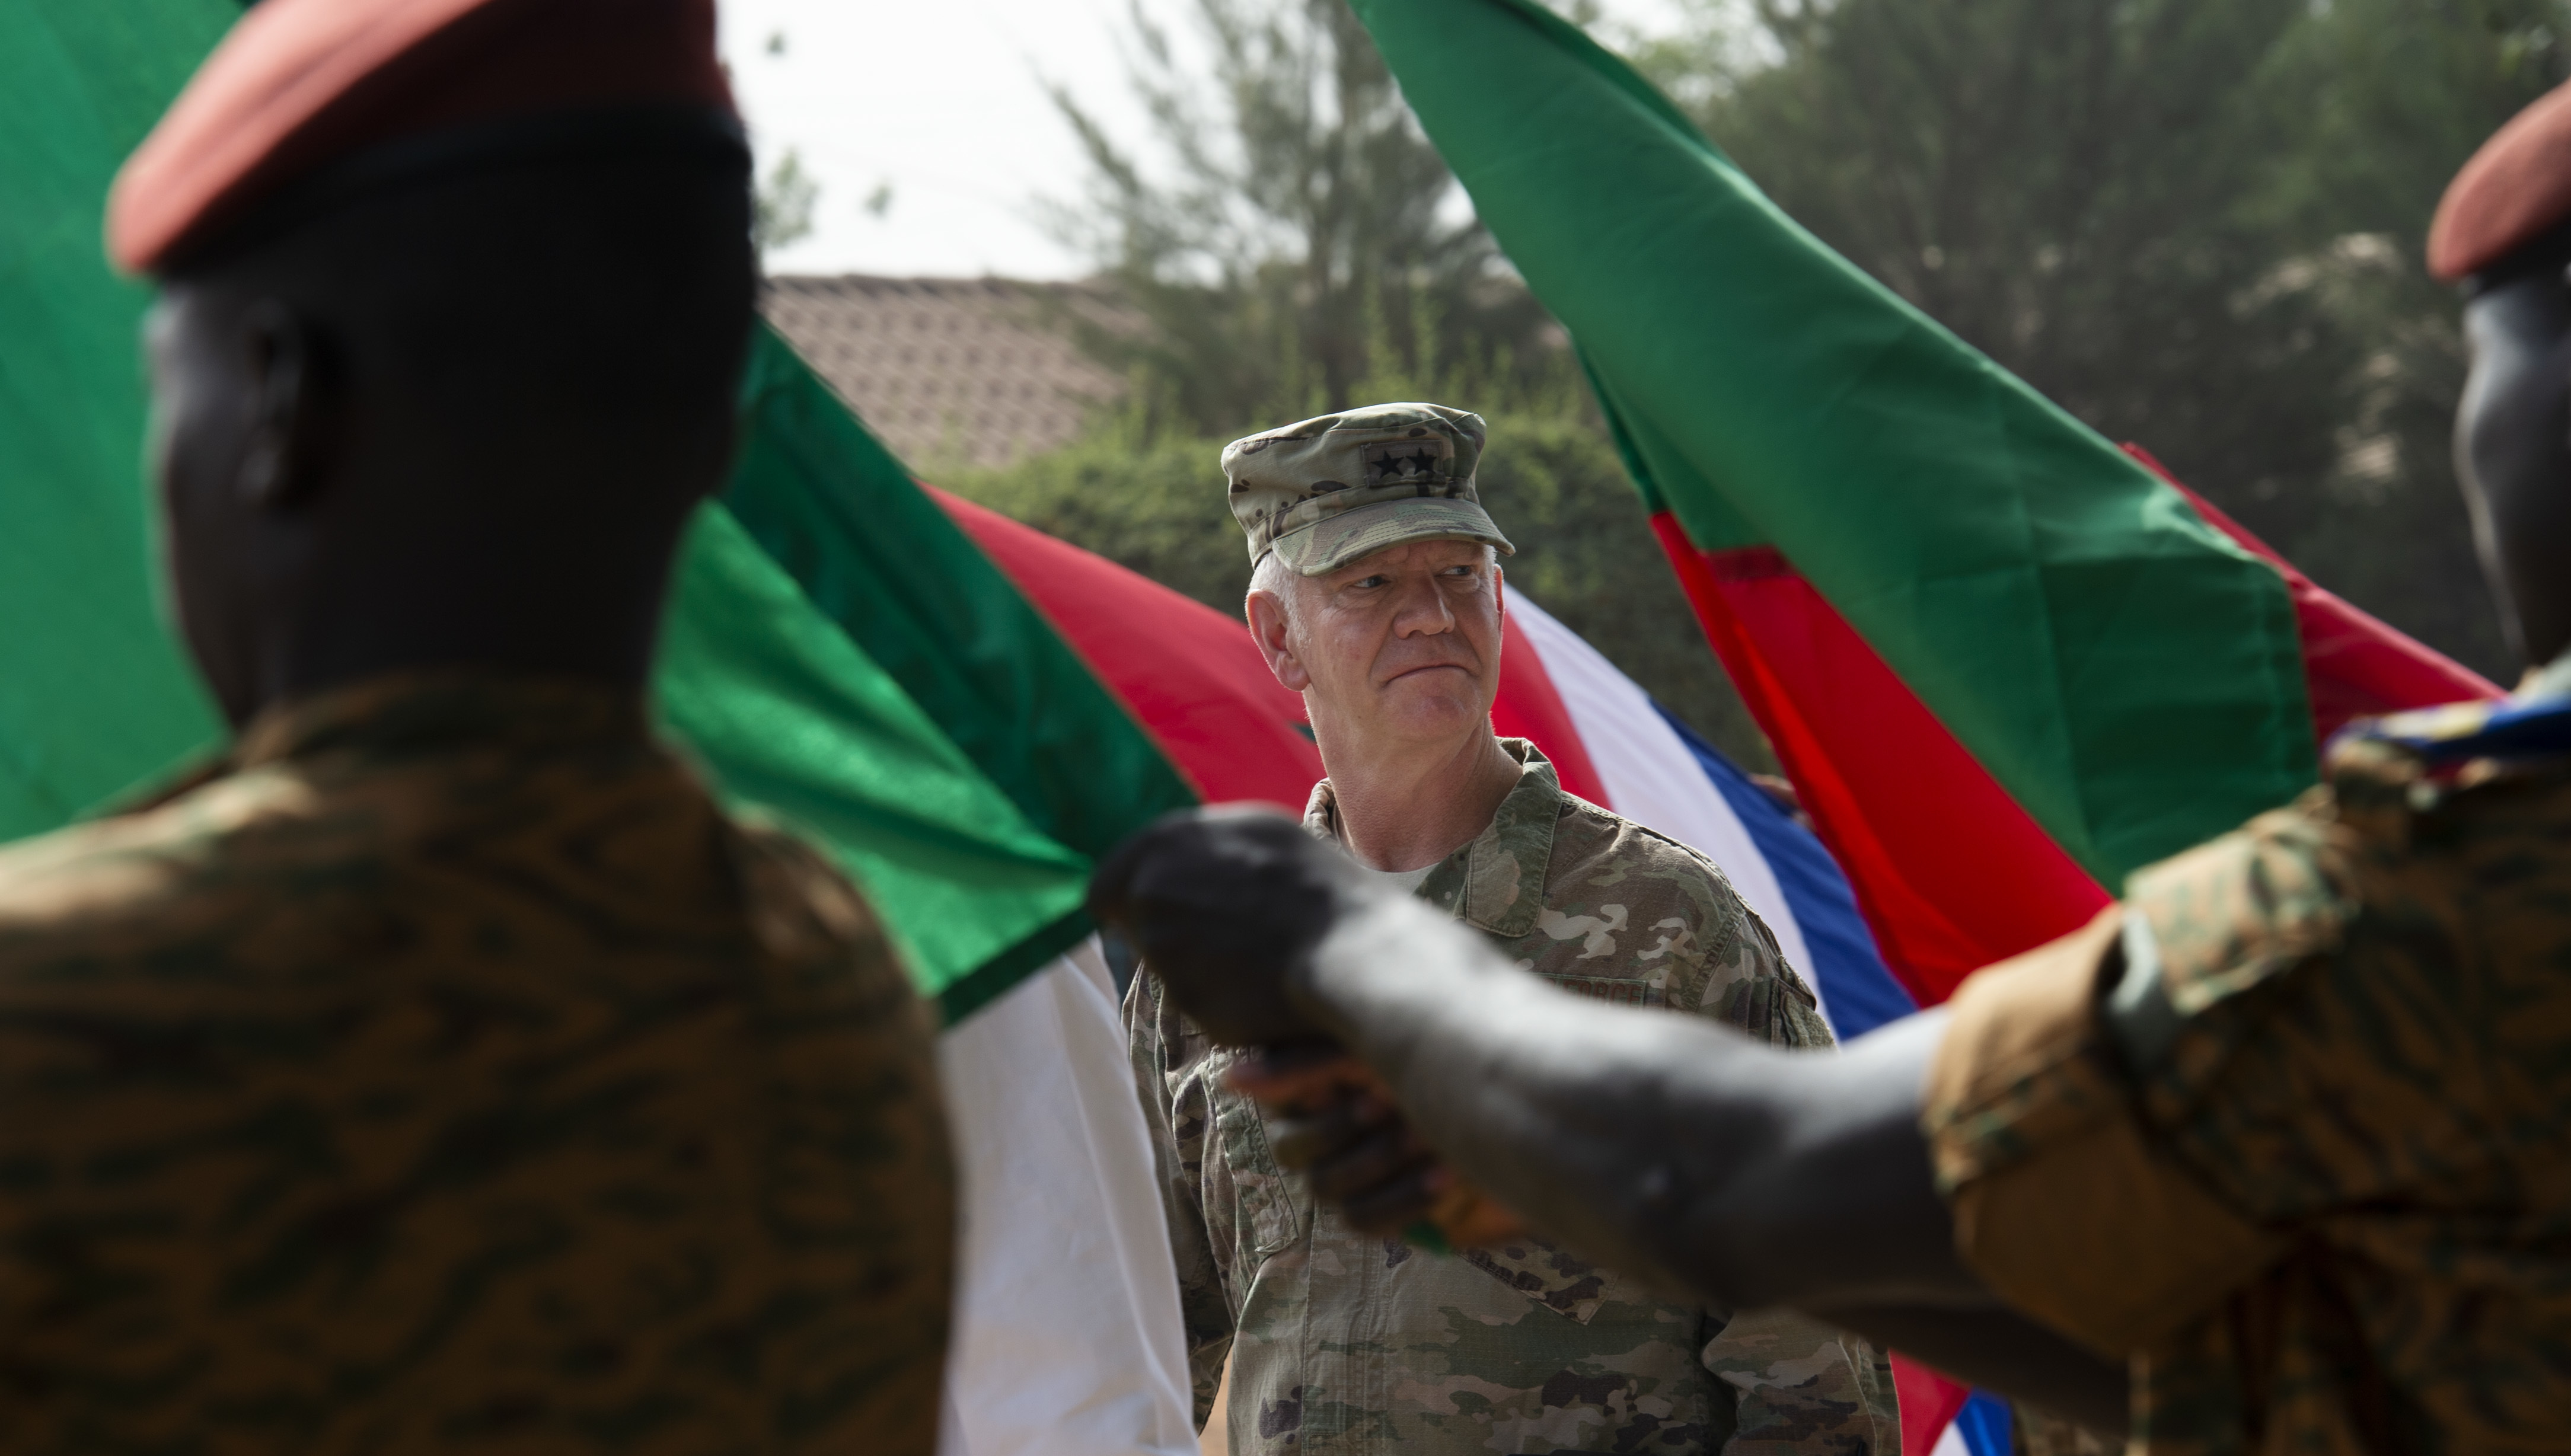 U.S. Air Force Maj. Gen. Mark Hicks, commander, Special Operations Command Africa, inspects service members from participating nations during a pass and review portion of the opening ceremony to Flintlock 2019. This year's exercise is being hosted by Burkina Faso with a key outstation in Mauritania.   (U.S. Navy photo by MC2 (SW/AW) Evan Parker / released)